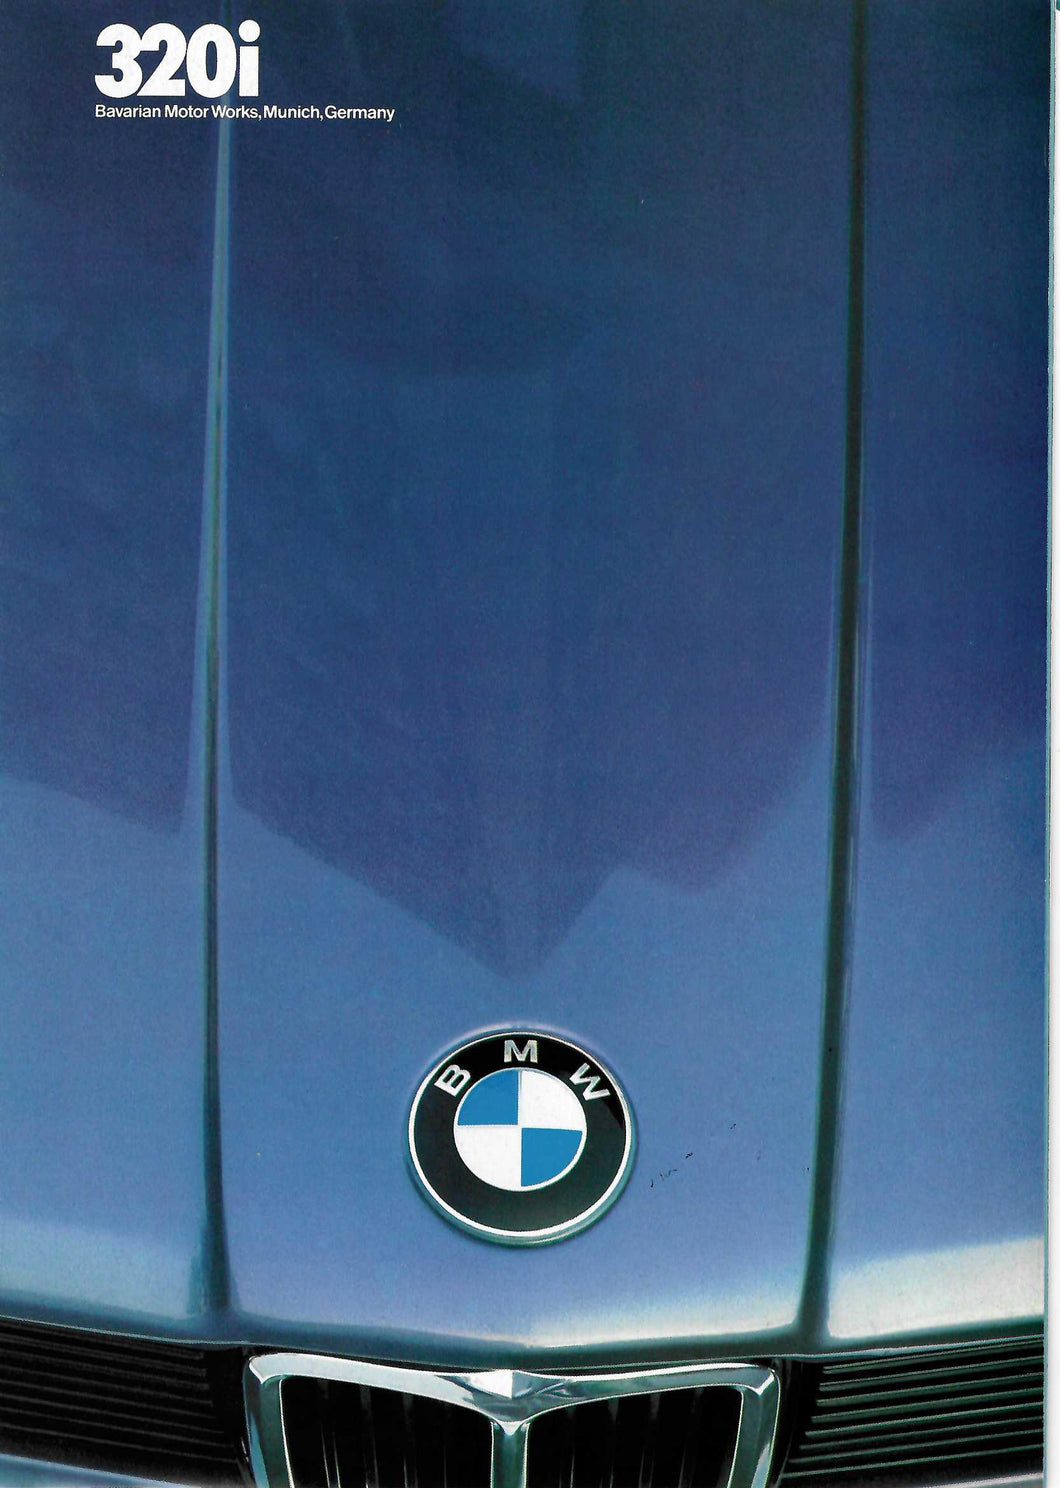 Brochure - 320i Barvarian Motor Works, Munich, Germany (1982)